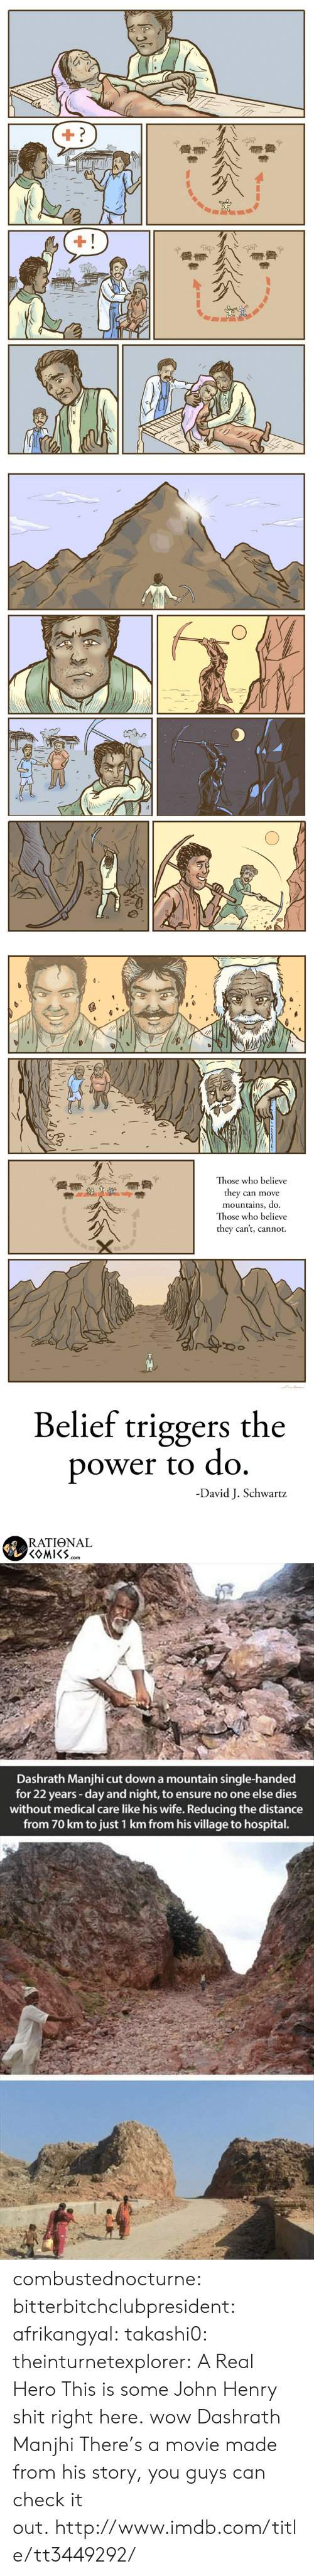 Shit, Tumblr, and Wow: Those who believe  they can move  mountains, do.  Those who believe  they can't, cannot.  Belief triggers the  ower to do  -David J. Schwartz  RATIONAL  COMI.. com.   Dashrath Manjhi cut down a mountain single-handed  for 22 years -day and night, to ensure no one else dies  without medical care like his wife. Reducing the distance  from 70 km to just 1 km from his village to hospital. combustednocturne:  bitterbitchclubpresident: afrikangyal:  takashi0:  theinturnetexplorer:  A Real Hero  This is some John Henry shit right here.   wow  Dashrath Manjhi  There's a movie made from his story, you guys can check it out.http://www.imdb.com/title/tt3449292/